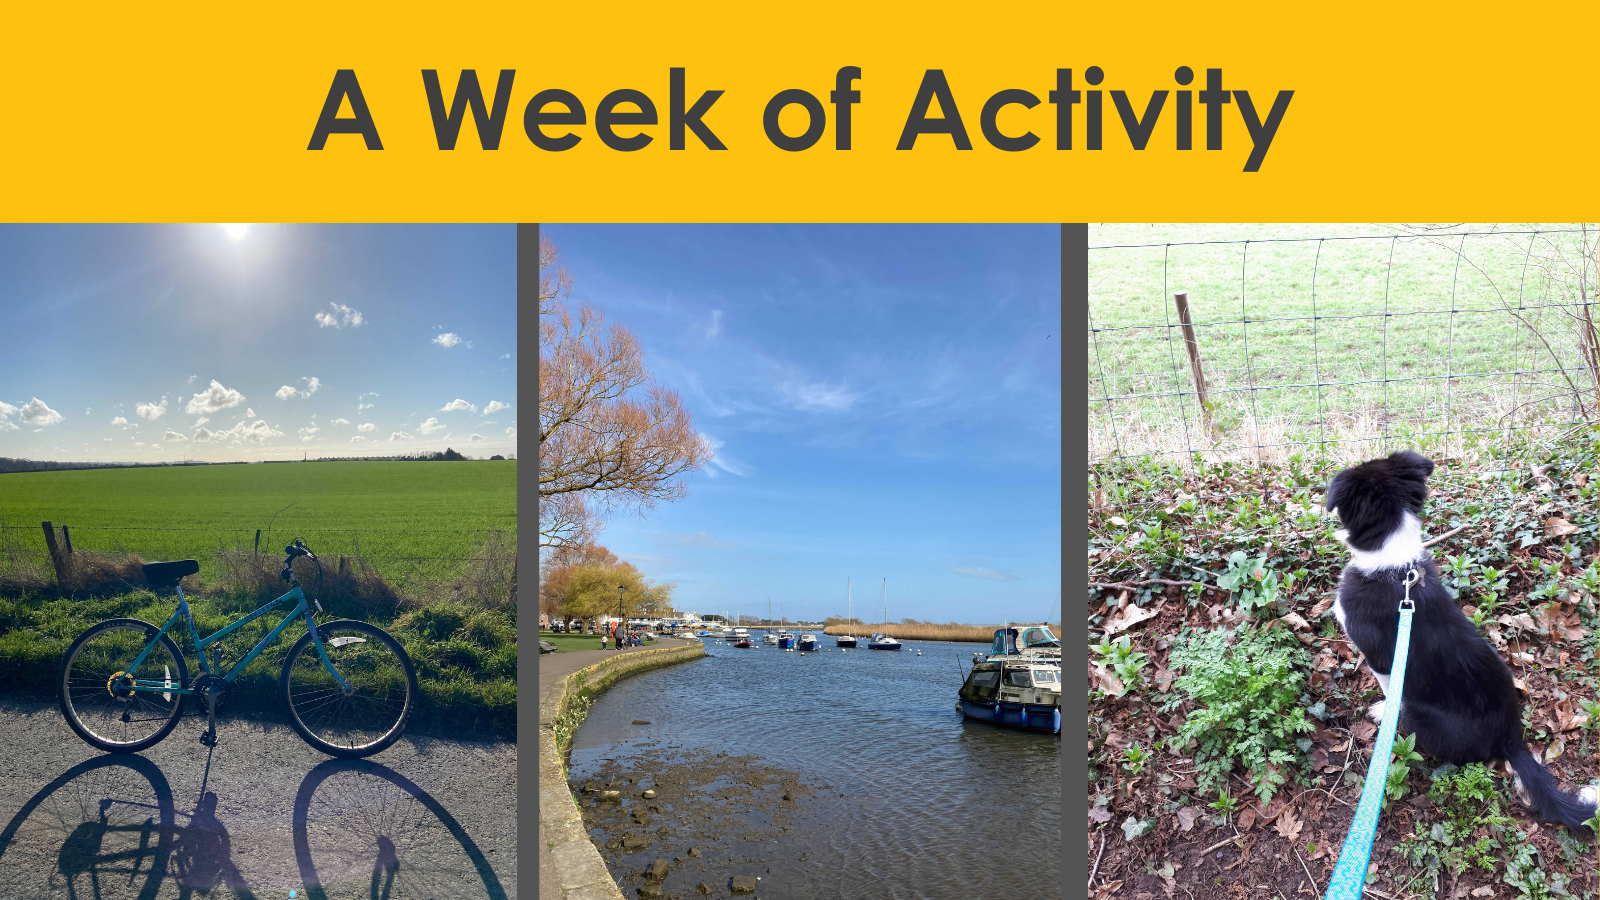 A Week of Activity: Why we are doing it and how to get involved